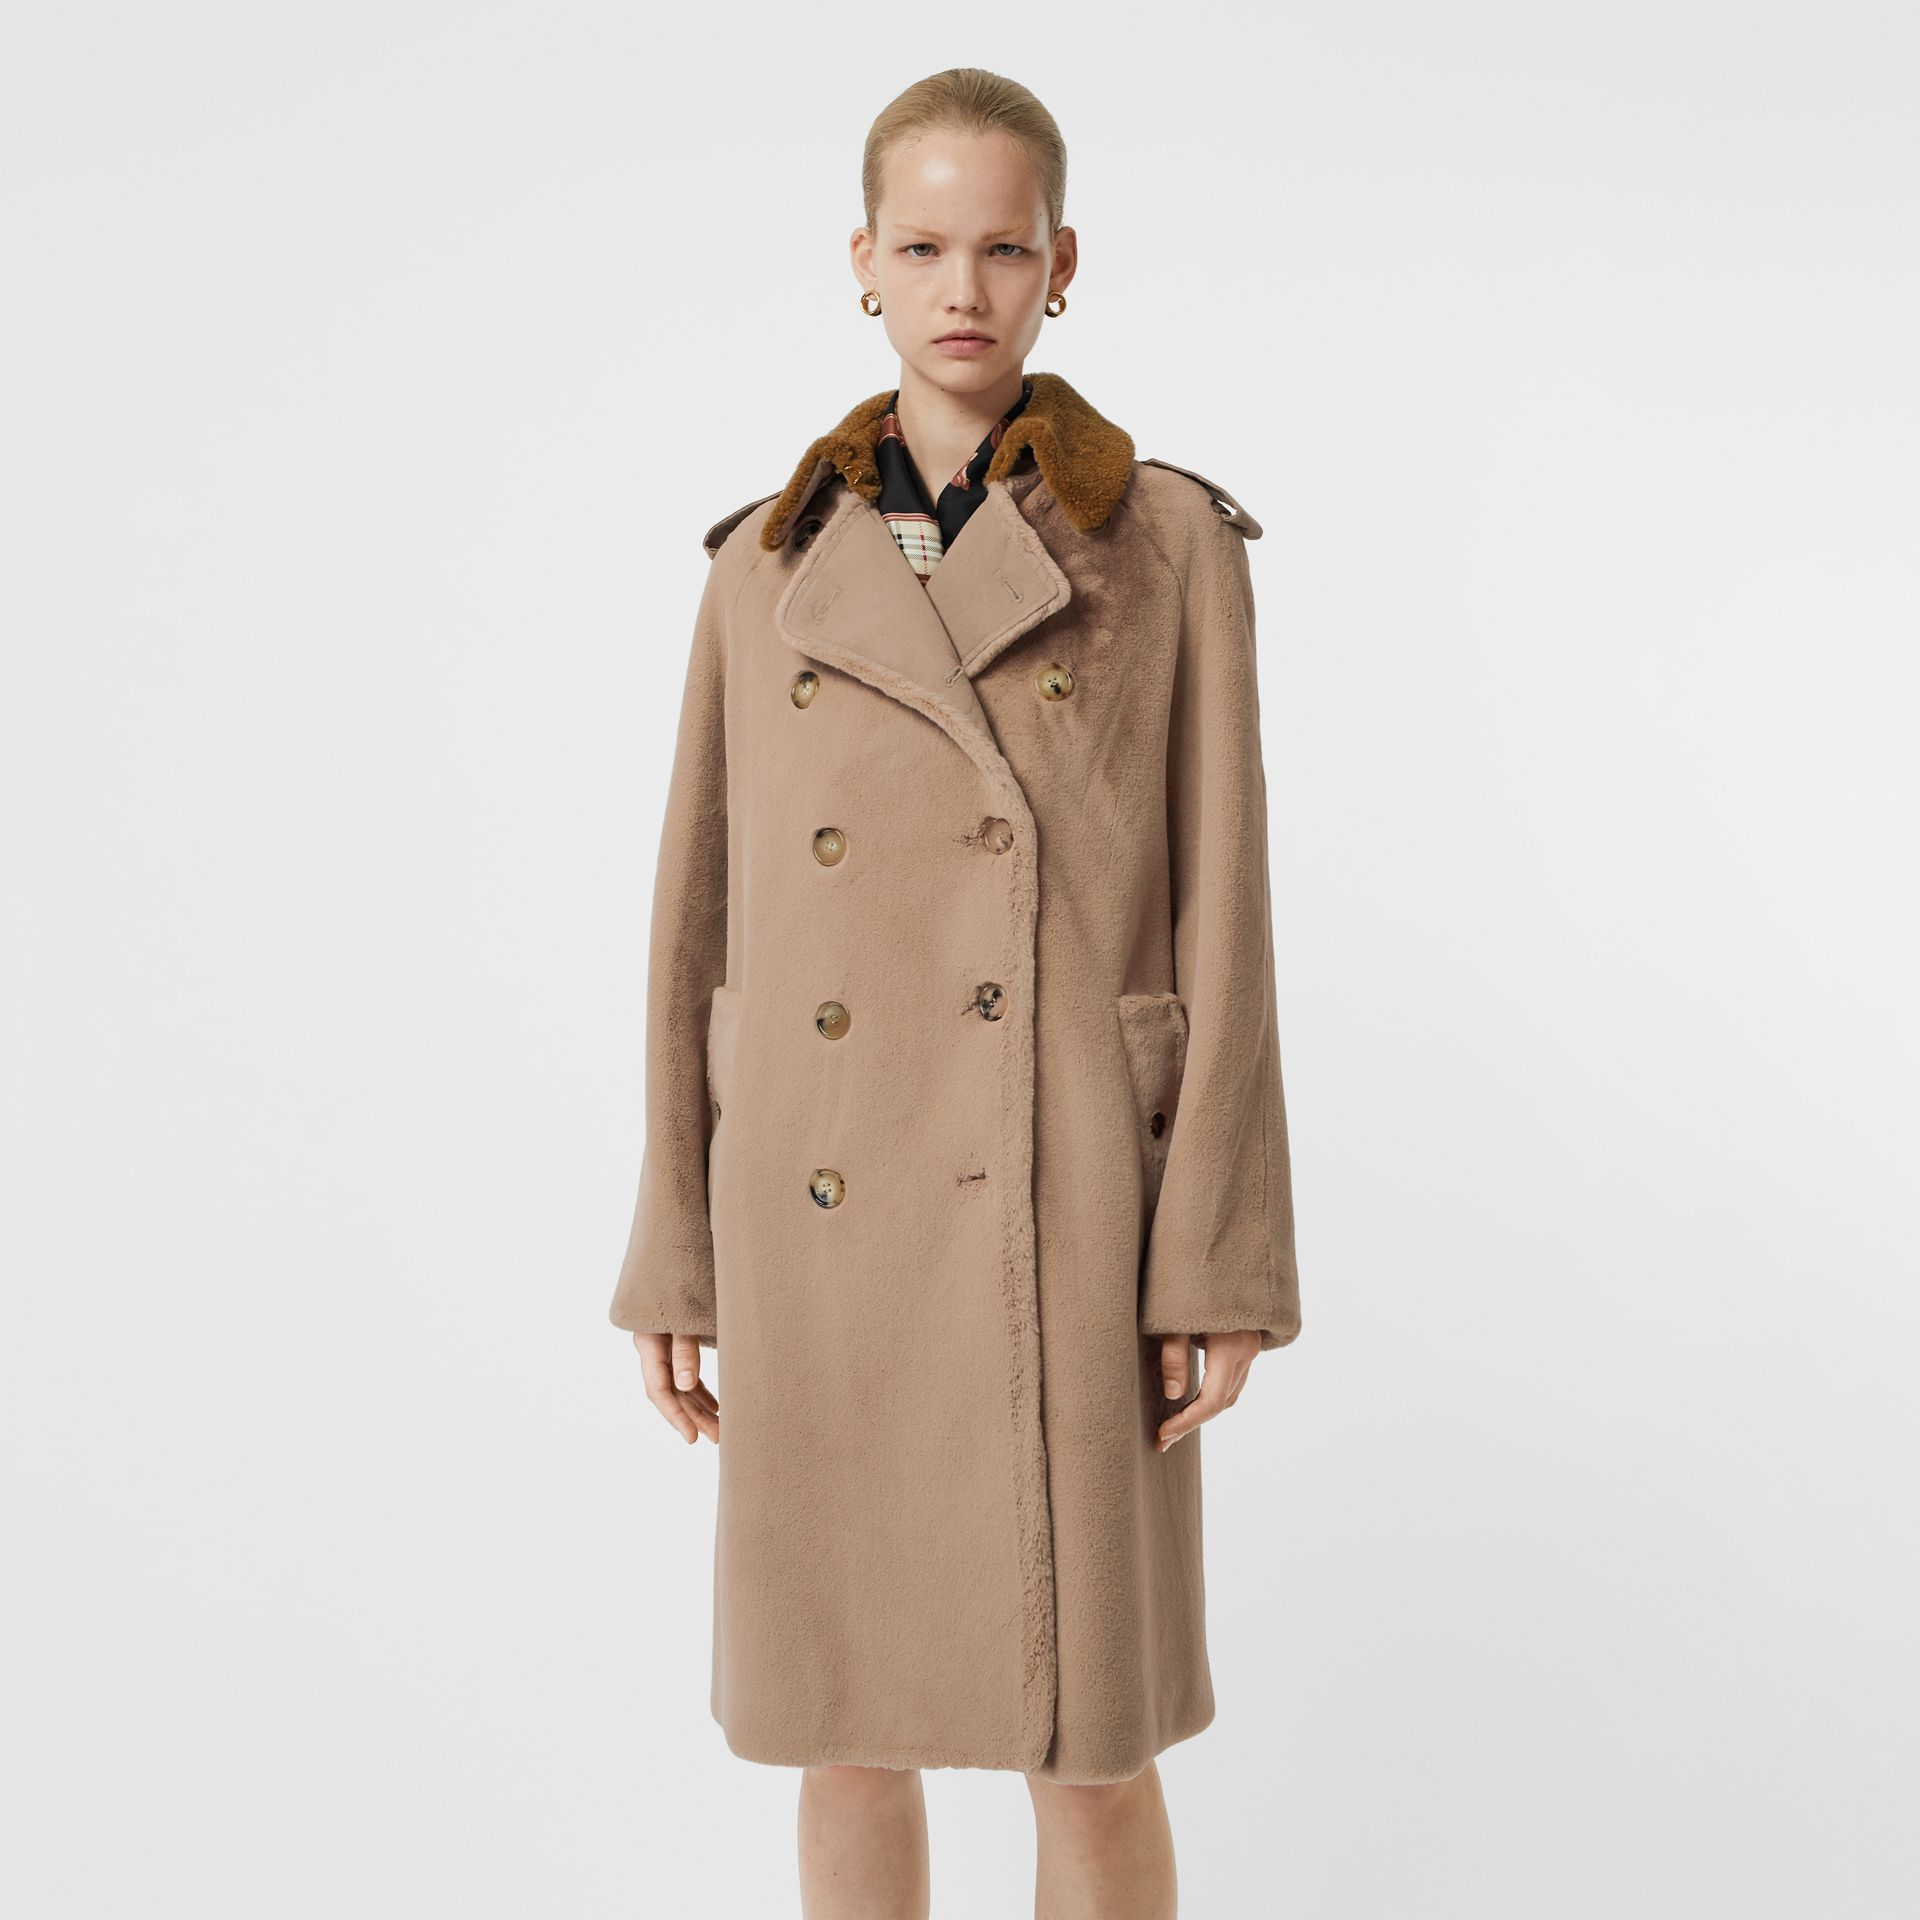 Shearling Trim Faux Fur Trench Coat in Taupe - Women | Burberry Australia - gallery image 6